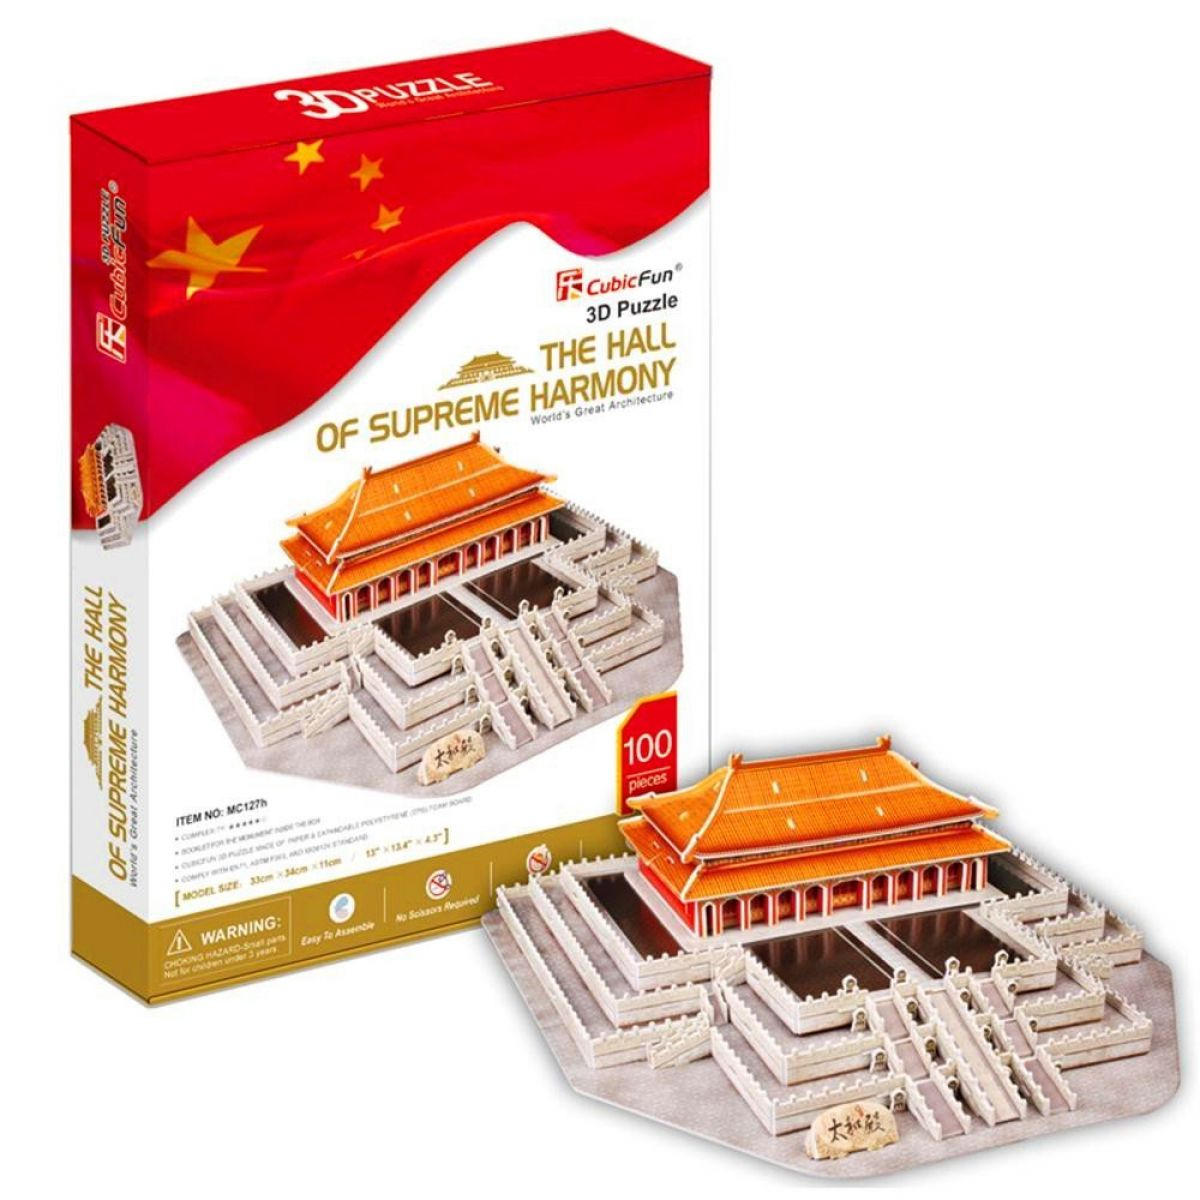 CUBIC FUN 3D puzzle Hall of Supreme Harmony 100 ks